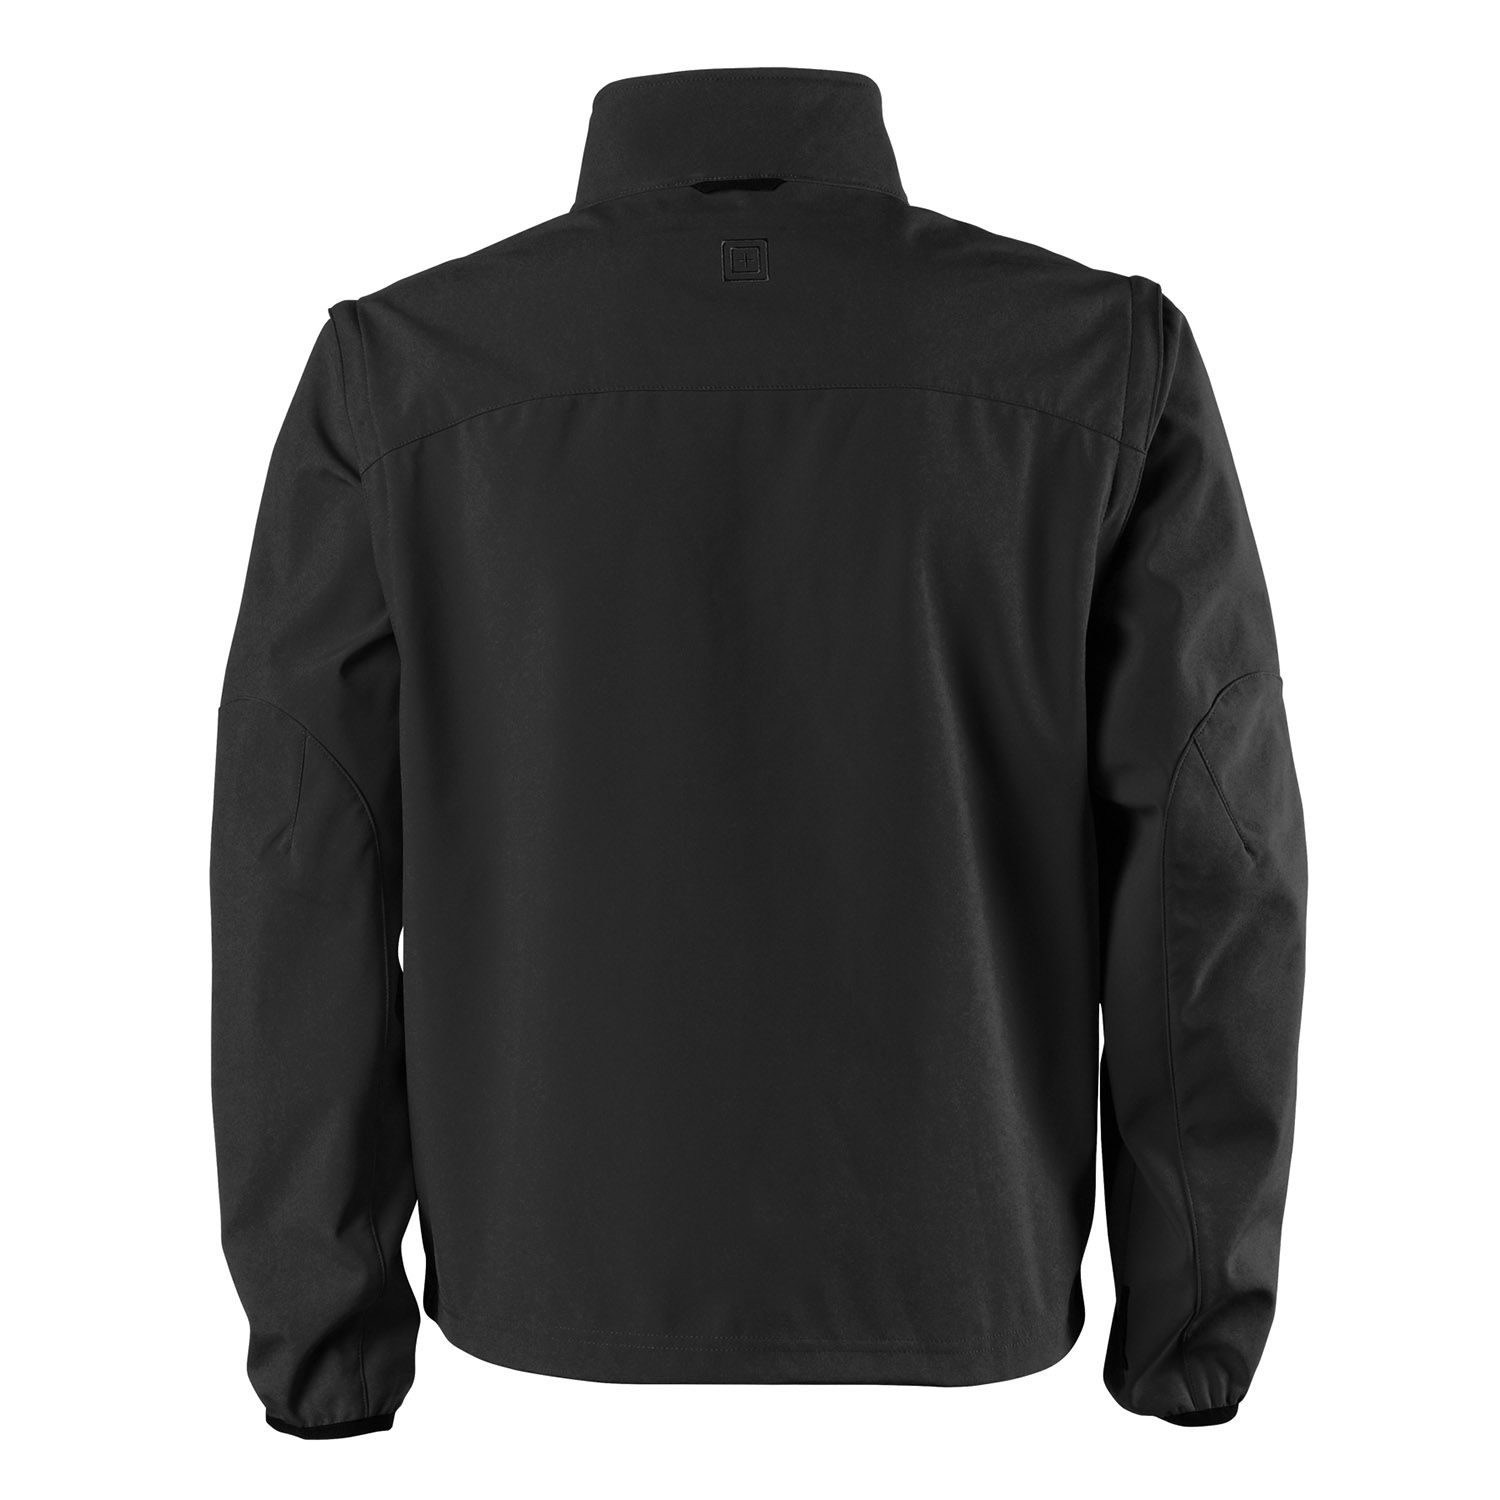 5.11 Tactical Valiant Softshell Jacket